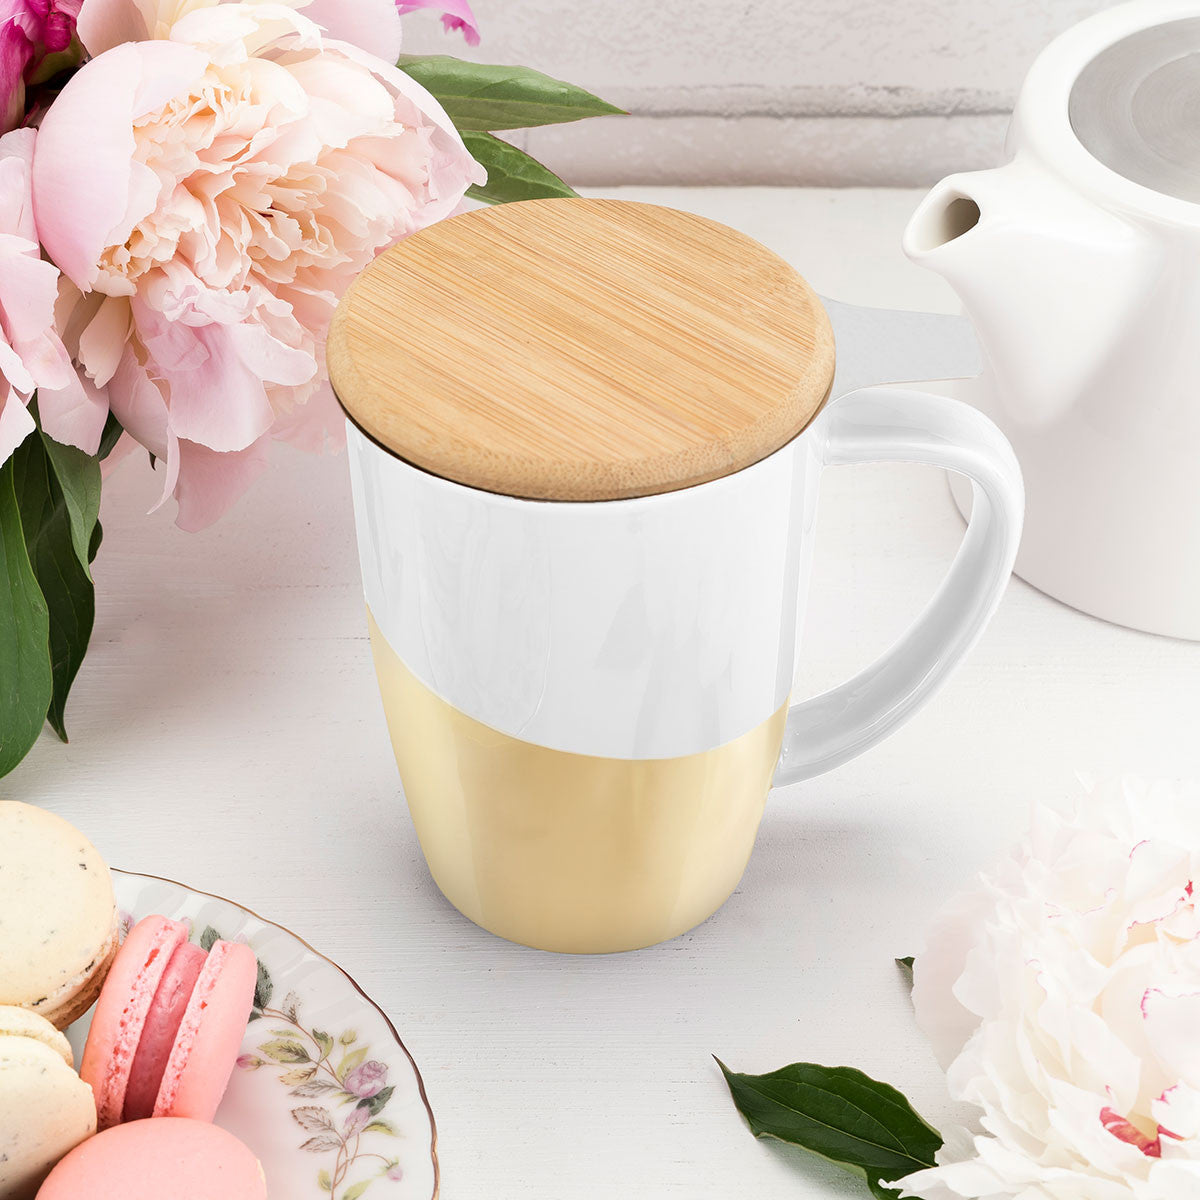 Bailey Gold Dipped Ceramic Tea Mug and Infuser | Only £19.99